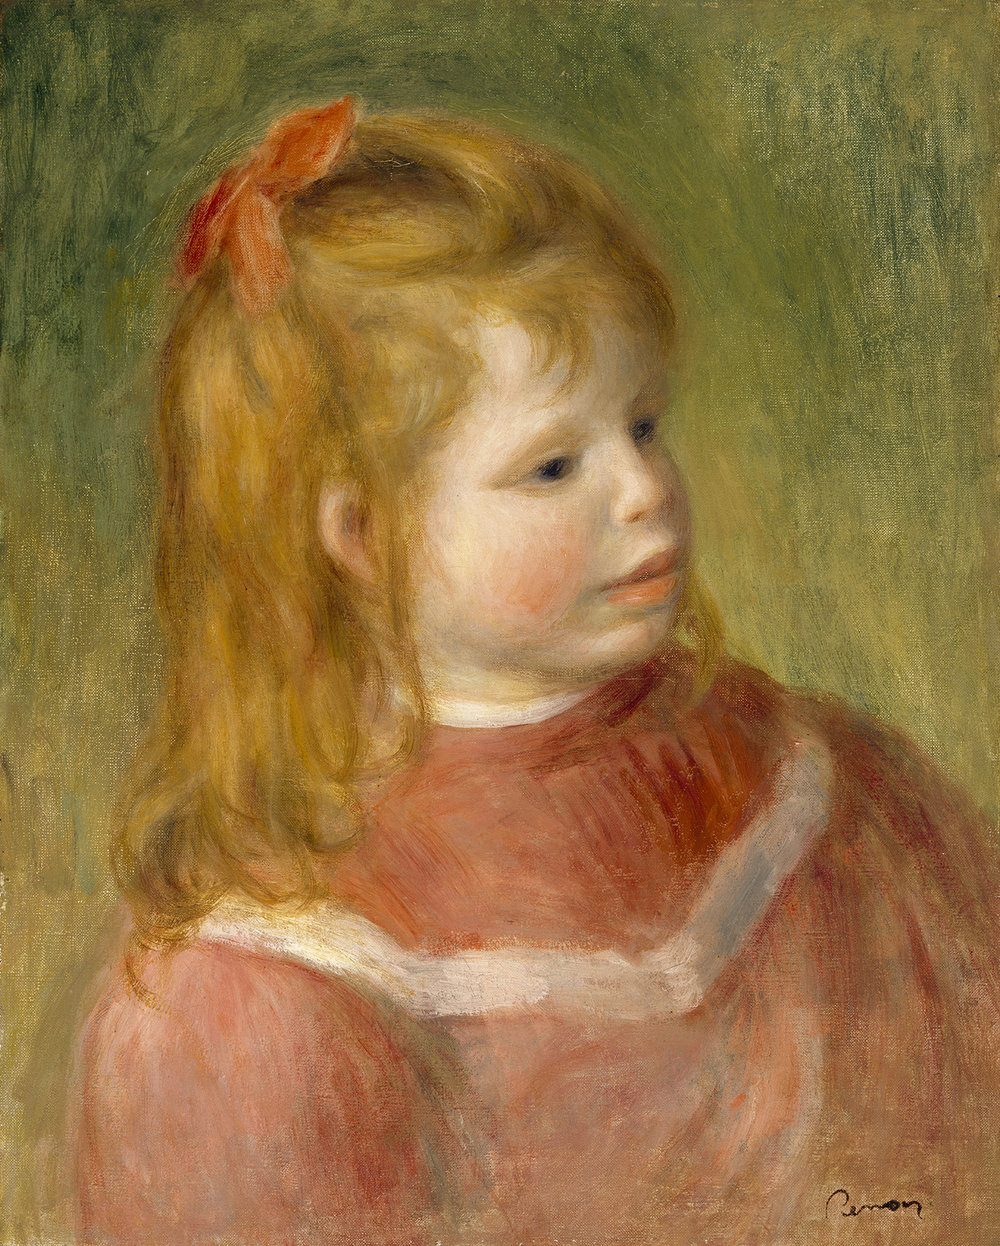 Pierre‐Auguste Renoir,  Portrait of Jean , 1987, Oil on canvas, The Museum of Fine Arts, Houston, Gift of Isaac and Agnes Cullen Arnold, 68.55